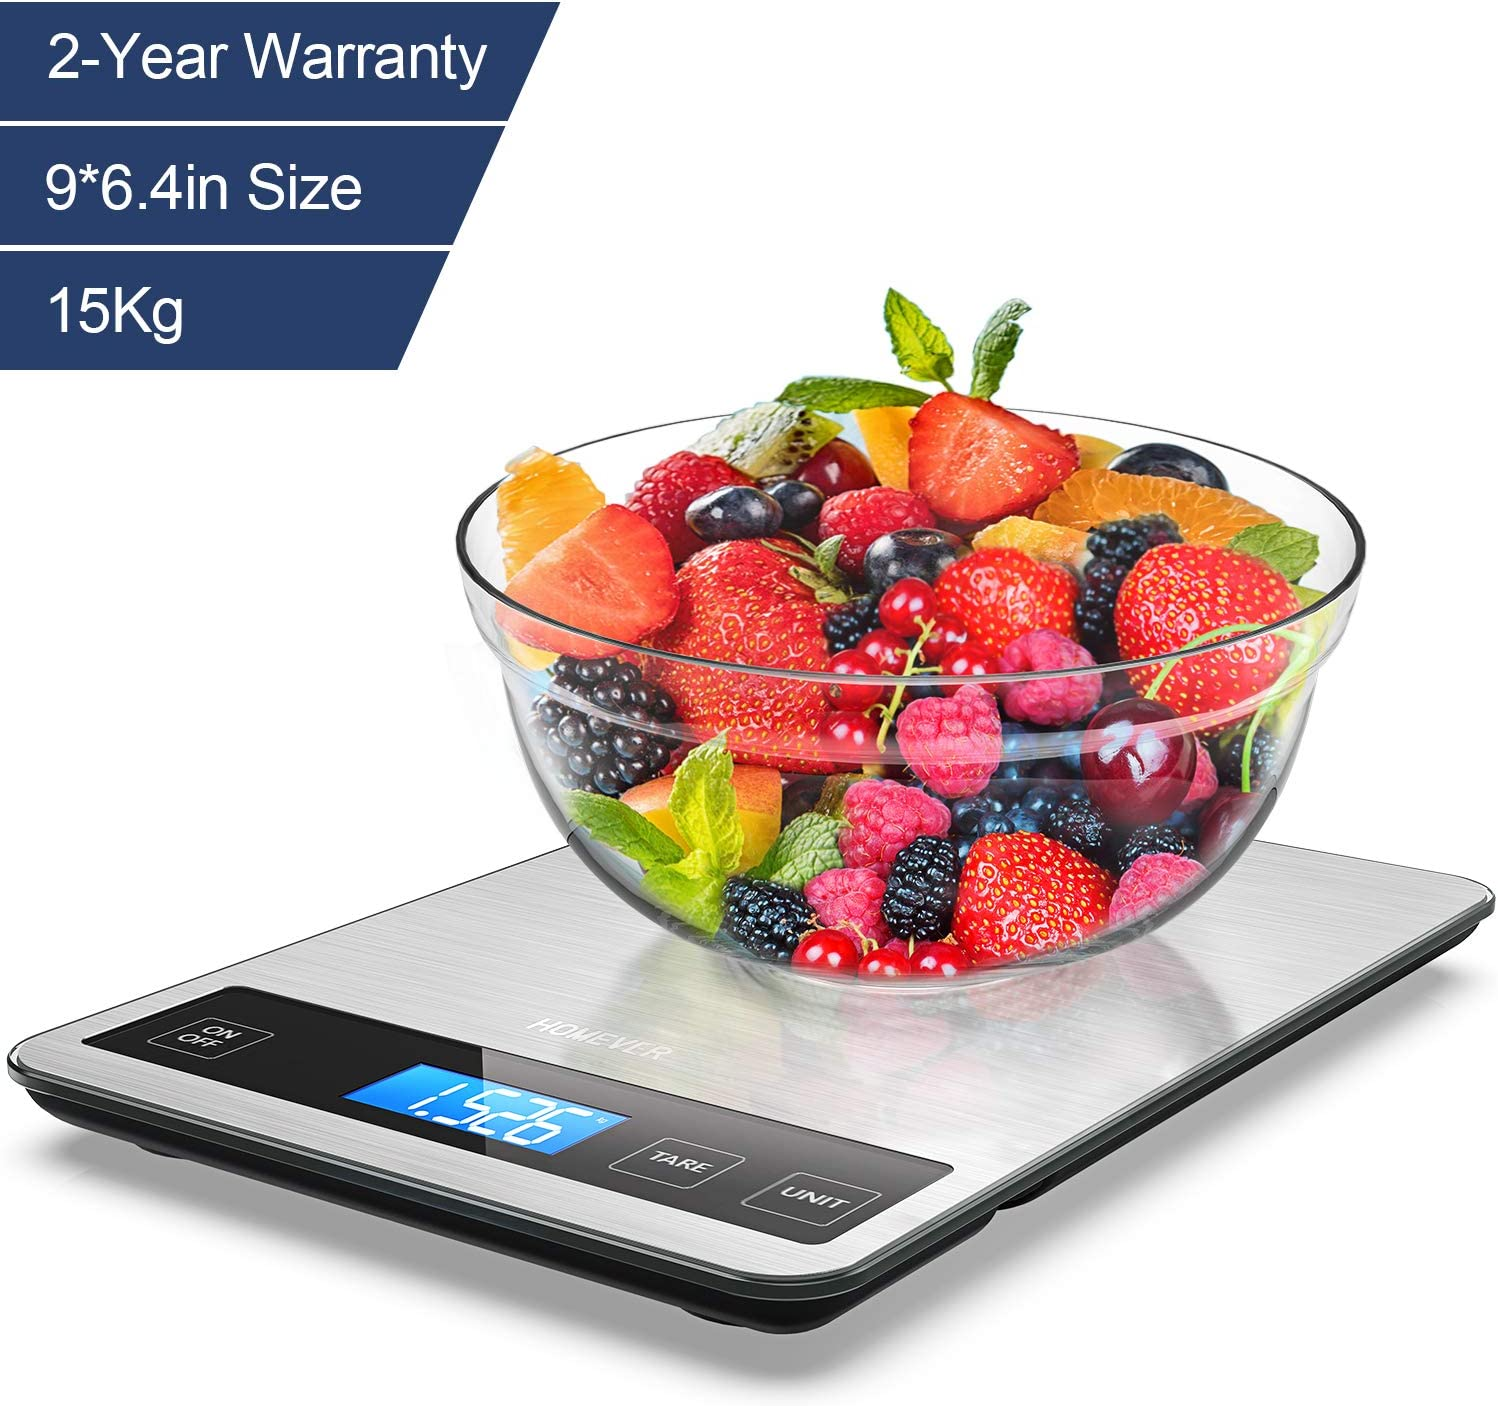 Food Scale, HOMEVER Food Scales Digital Weight grams and oz,15kg Digital Food Scale with 96.3 in Big Panel, 1g Accuracy and IP67 Waterproof